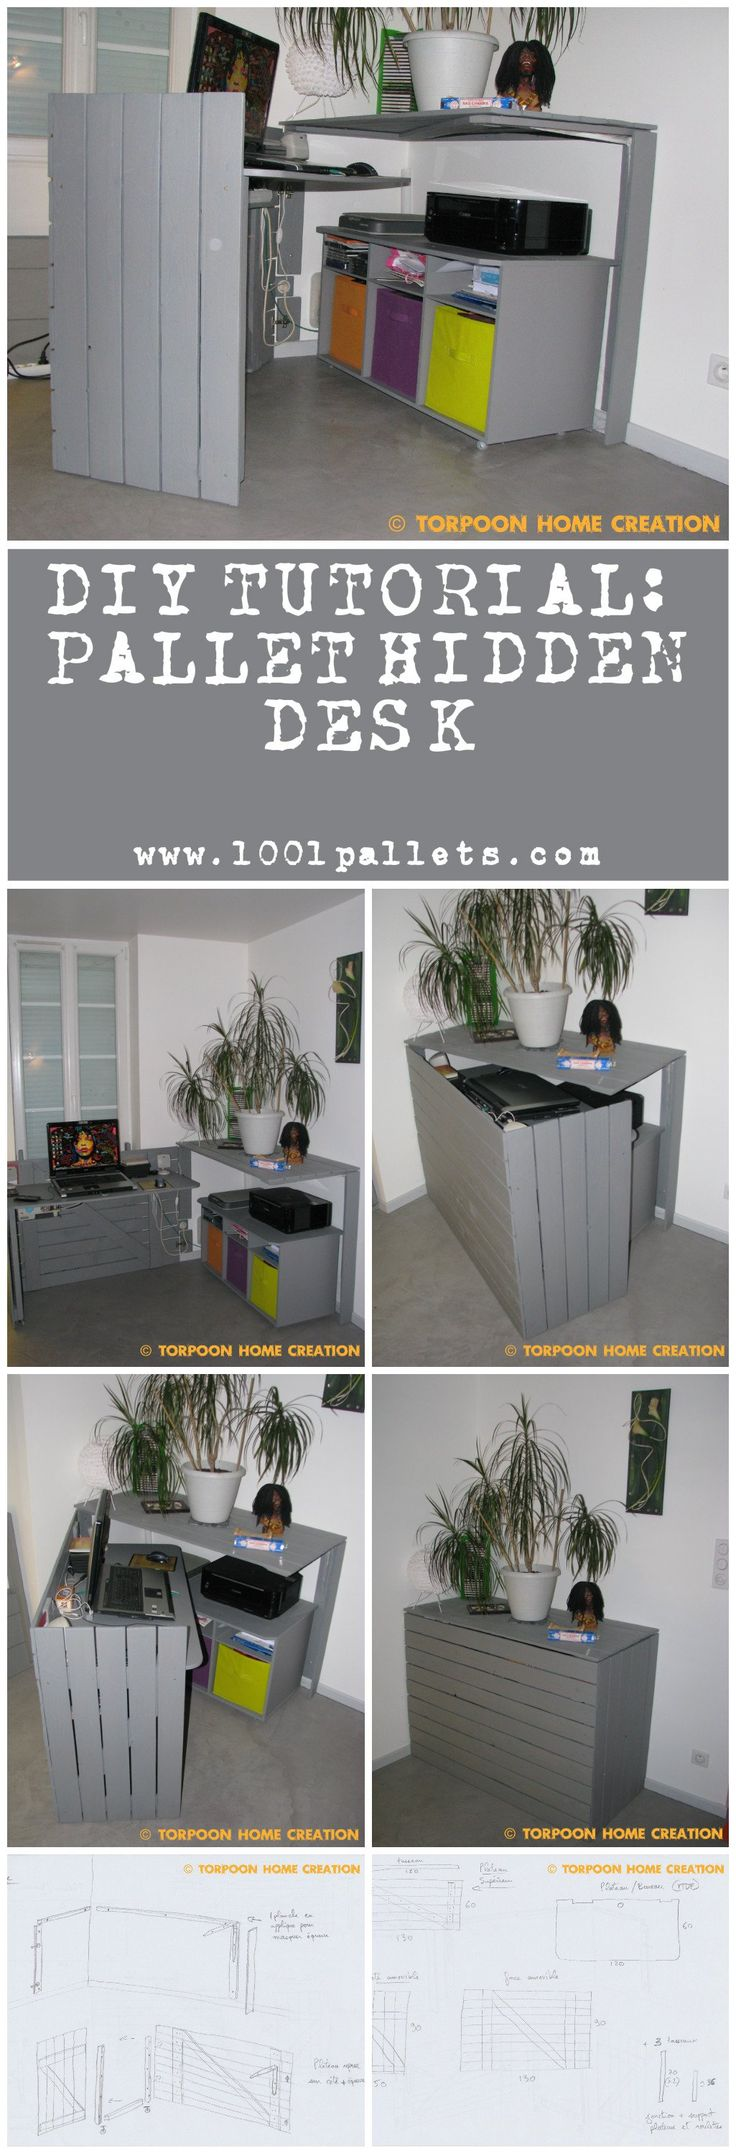 """This tutorial by François from """"Torpoon Home Creation"""" in collaboration with 1001Pallets will describe how to make a hidden desk …"""